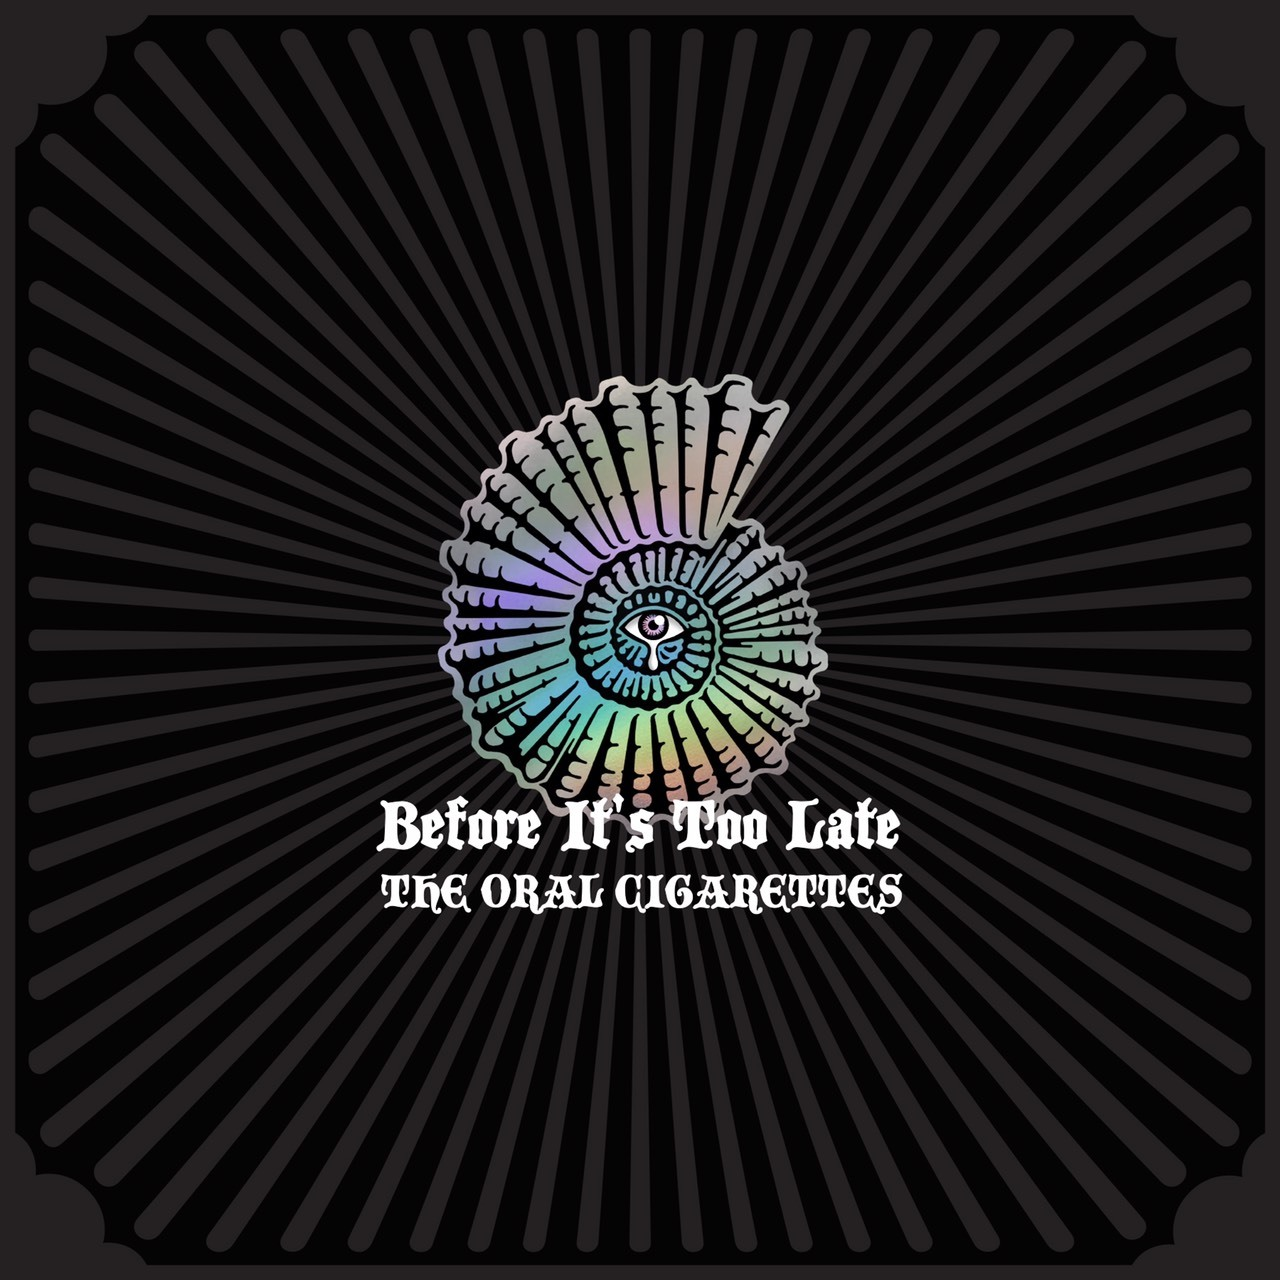 『Before It's Too Late』